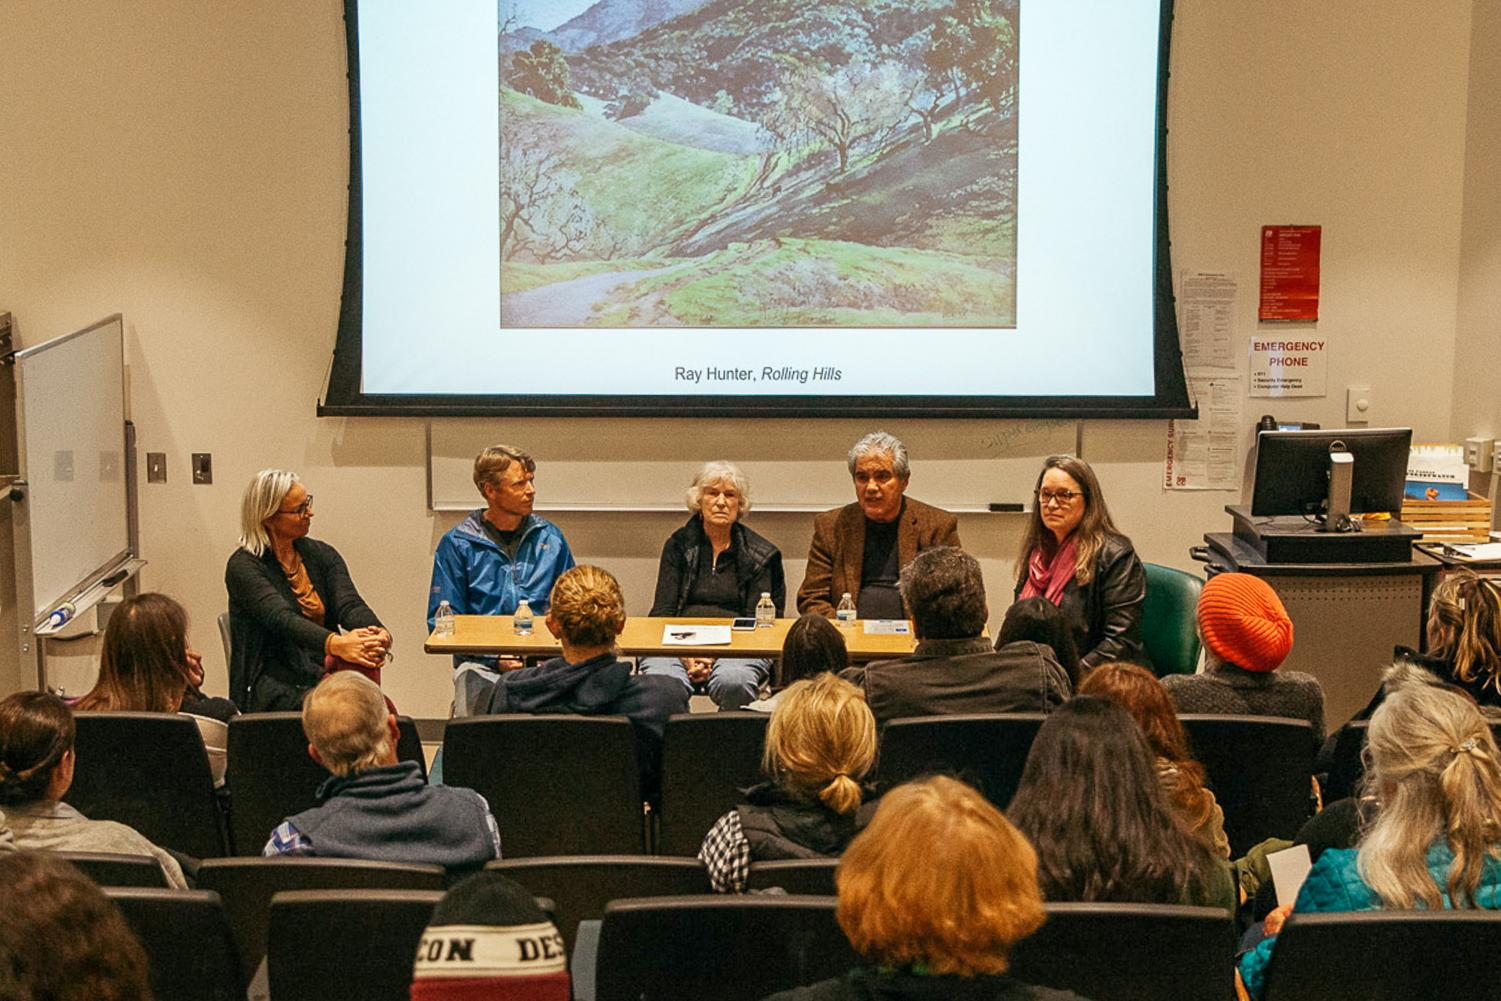 """From left, Public Lands Advocate for Los Padres ForrestWatch Rebecca August sits among Oak Group artists Kevin Gleason, Marcia Burtt, Arturo Tello and Atkinson Gallery Director Sarah Cunningham for the """"In Wilderness"""" artist panel discussion on Wednesday, Feb. 27, 2019, in the Humanities Building auditorium at City College in Santa Barbara, Calif. The artists involved discussed their relationships to painting and California landscapes."""